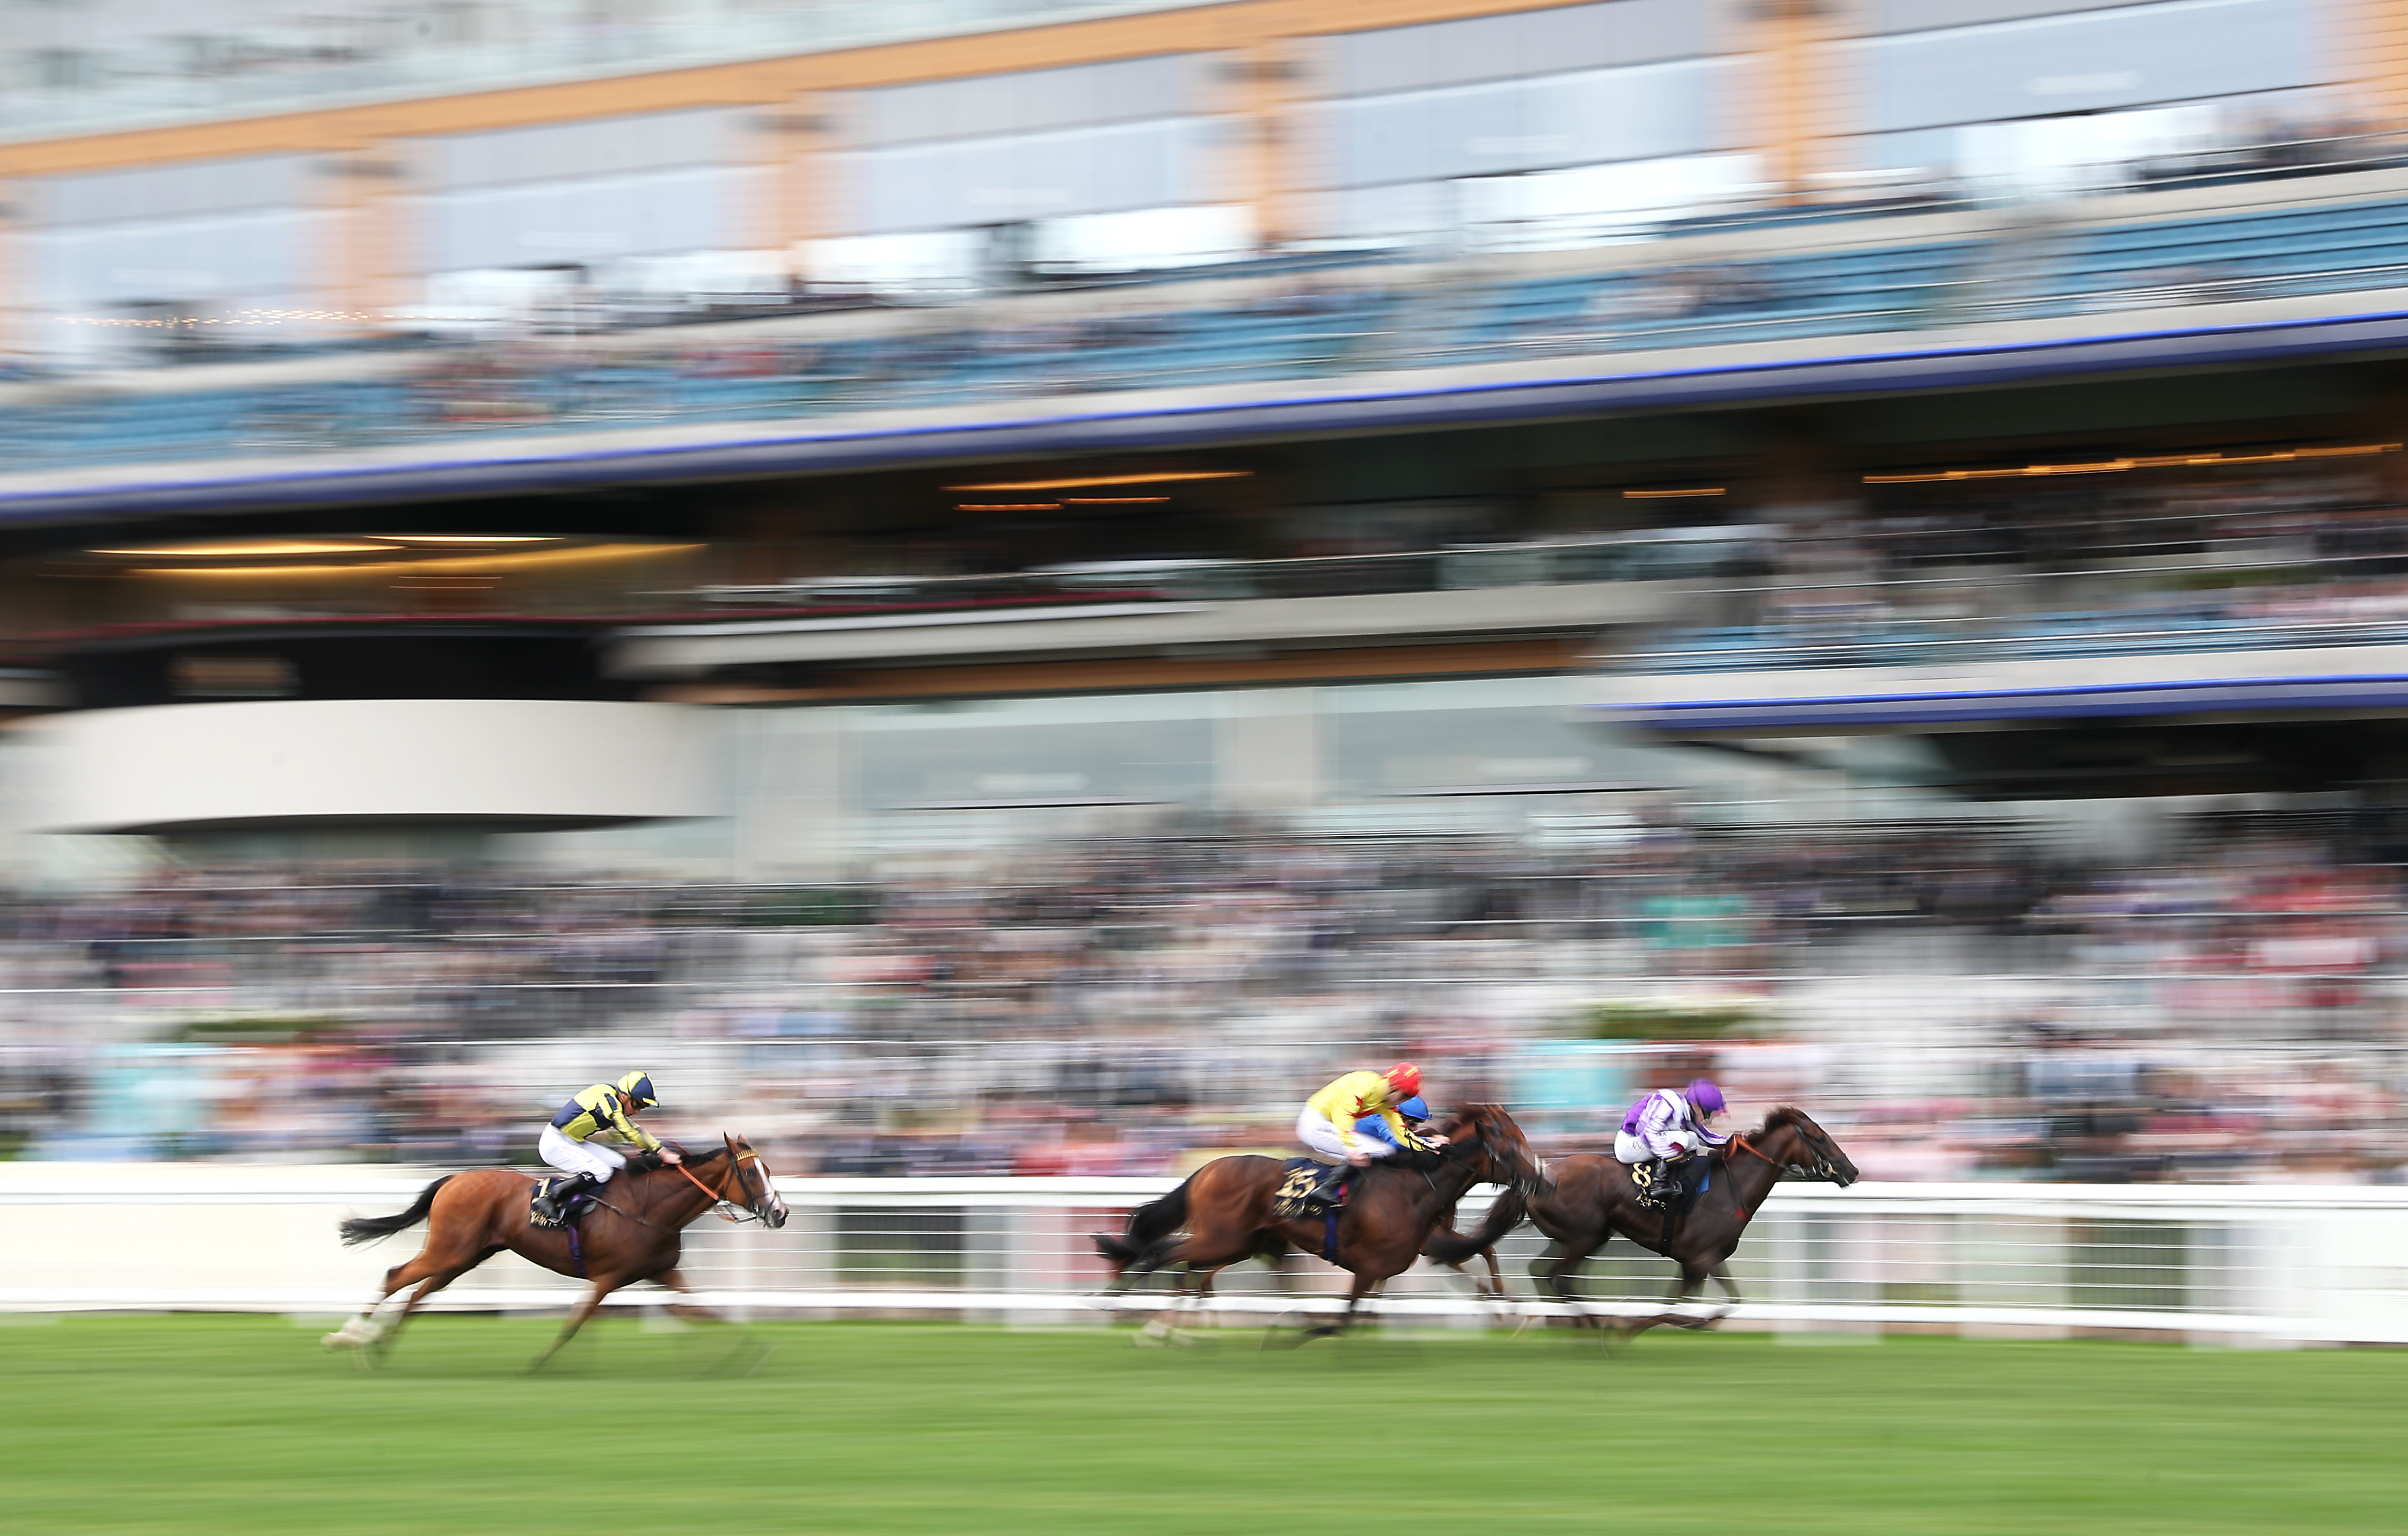 <p>Perotto ridden by jockey Oisin Murphy wins the Britannia Stakes (Heritage Handicap) during day three of Royal Ascot at Ascot Racecourse. Picture date: Thursday June 17, 2021.</p>